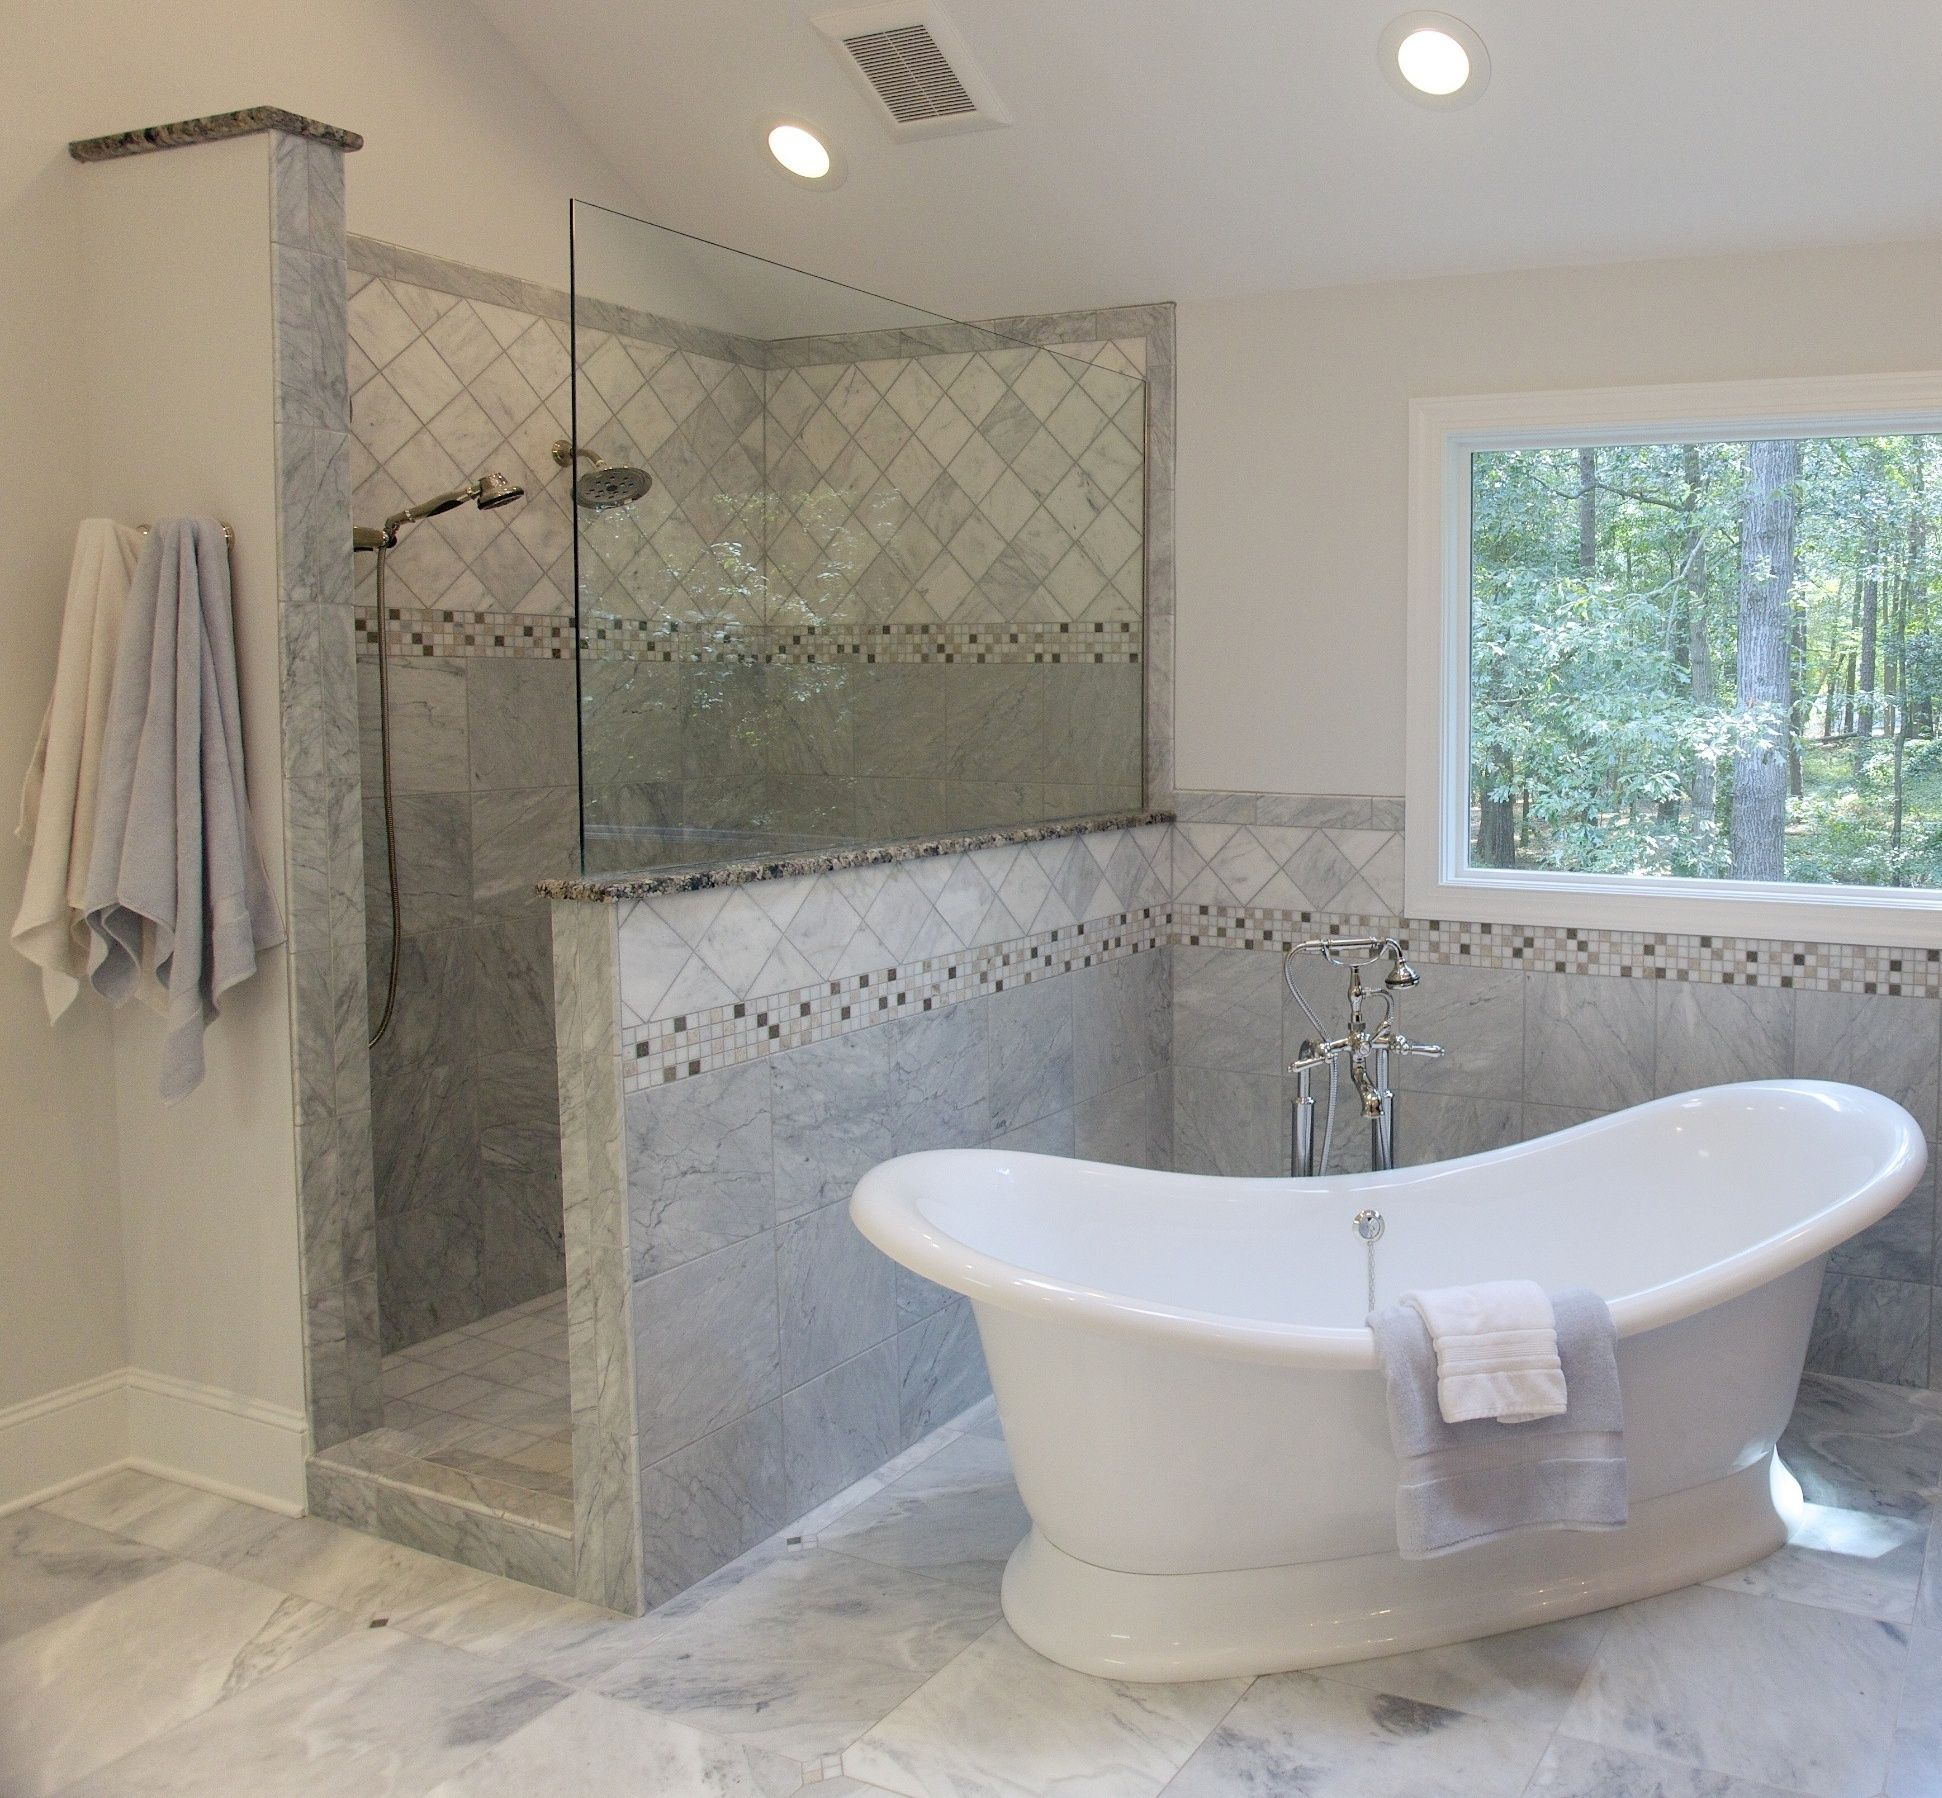 Romantic master bathroom ideas - Master Bathroom The Walk In Shower Makes This Low Maintenance The Slipper